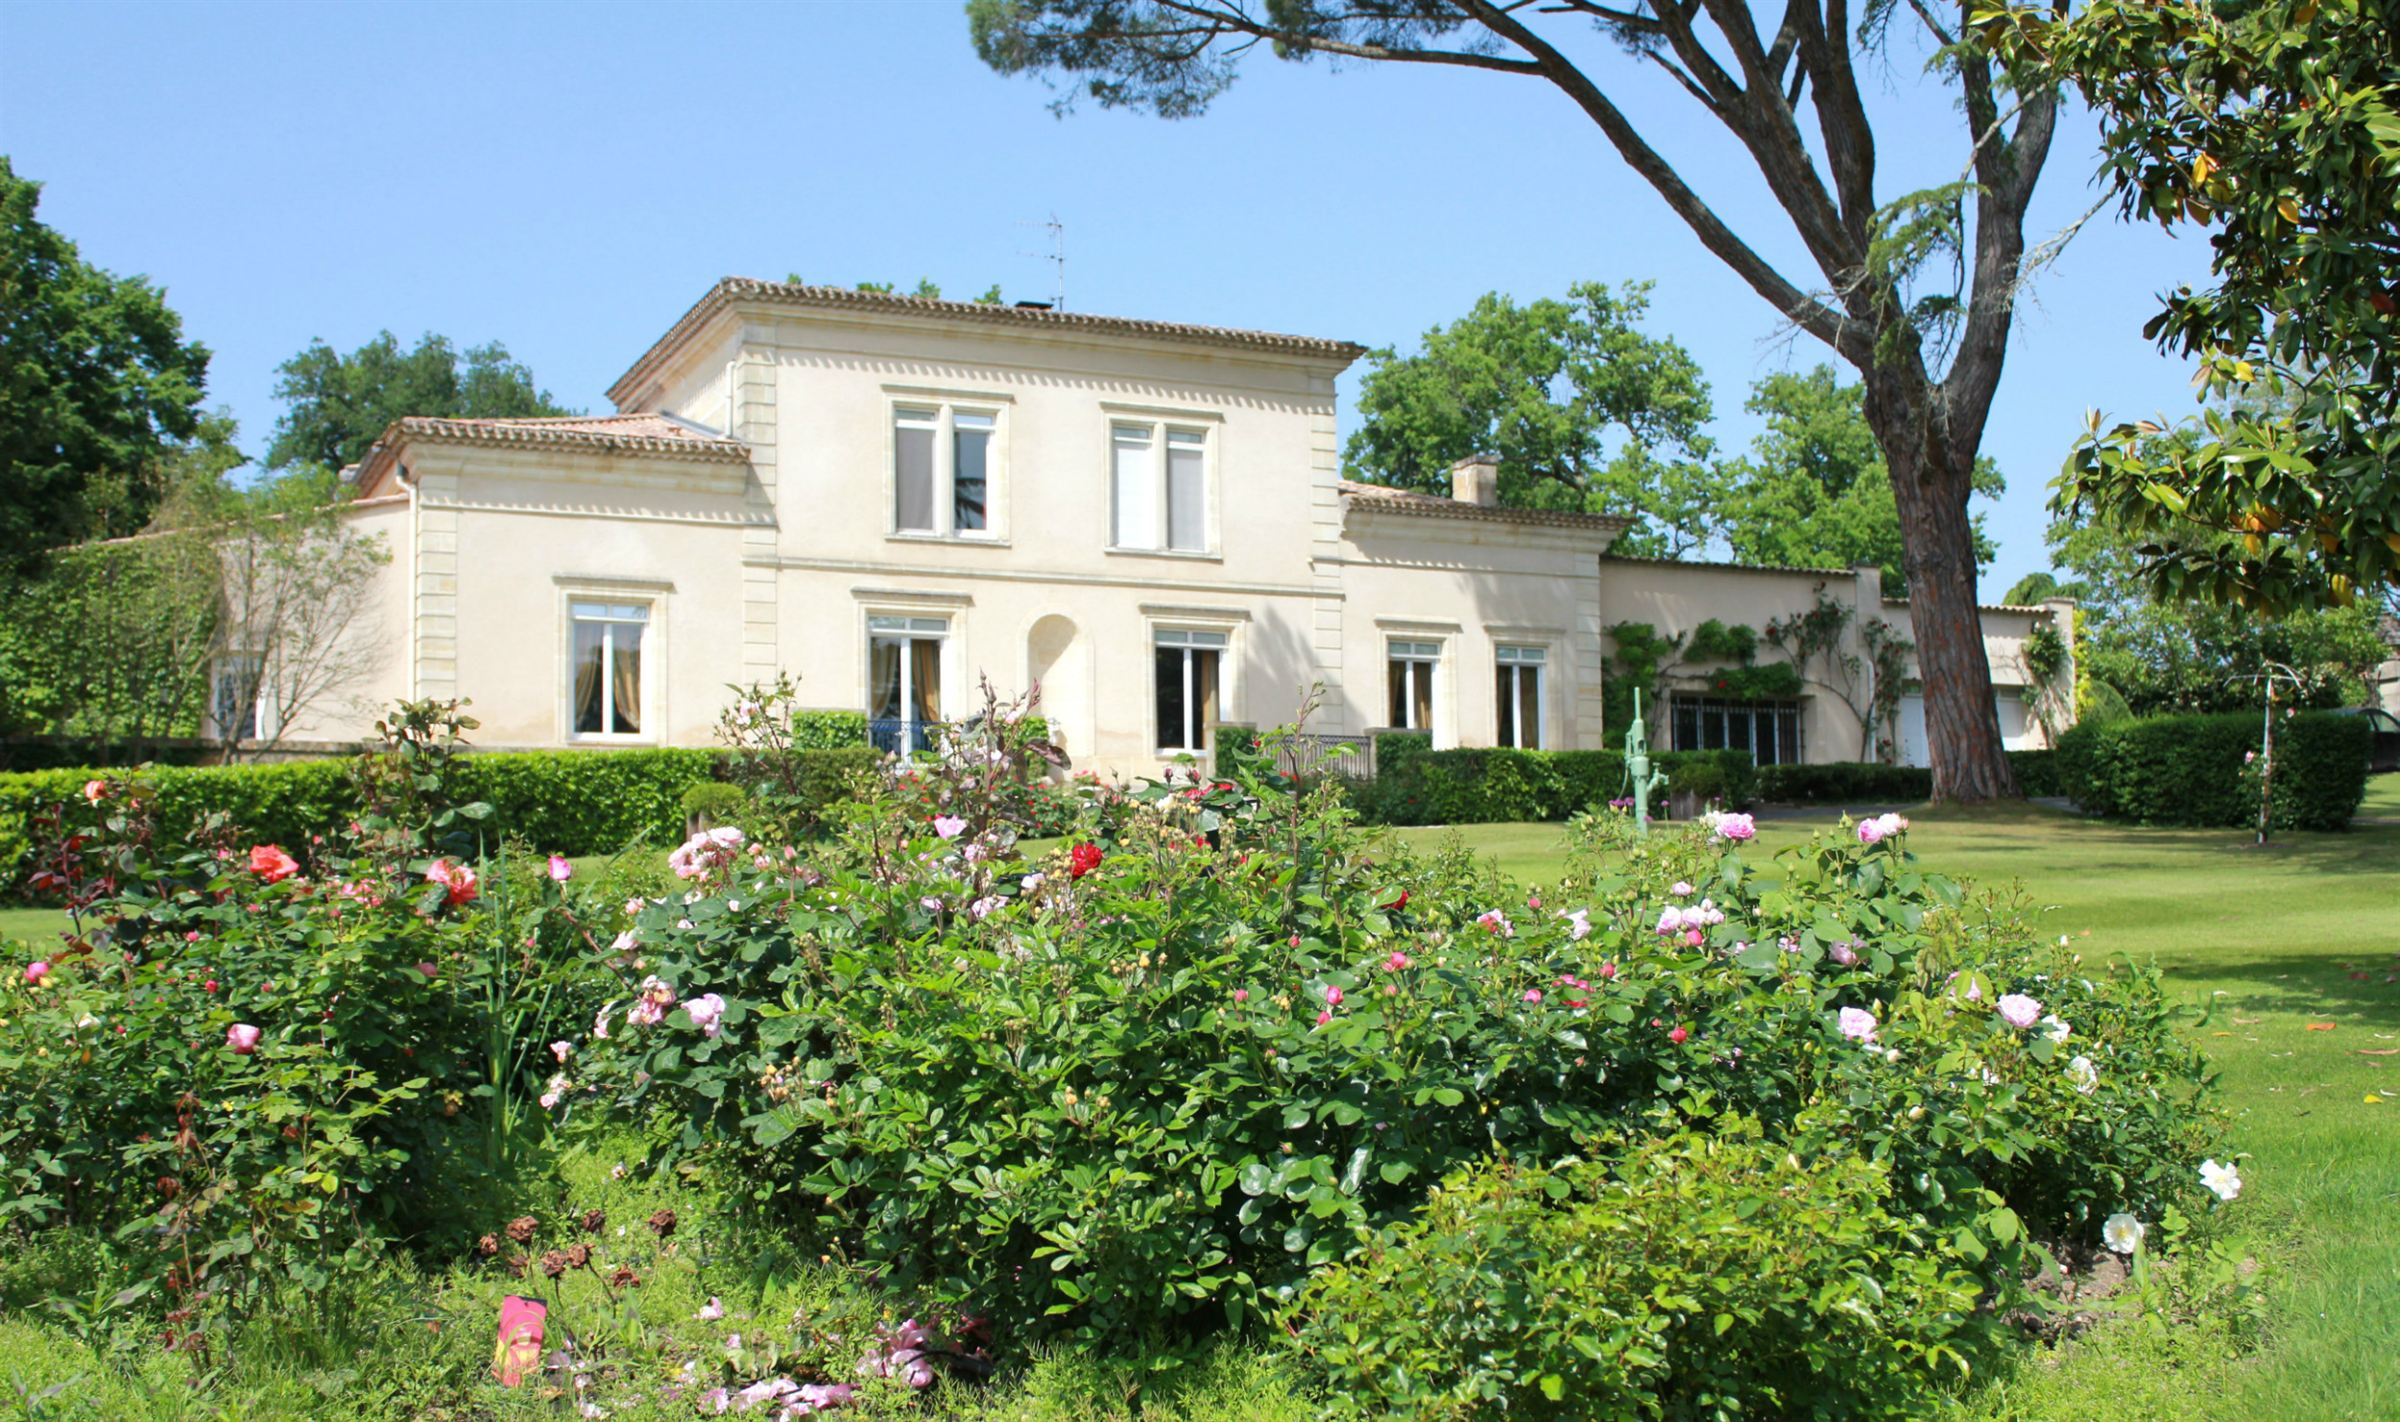 Property For Sale at EXCEPTIONAL PROPERTY NEAR BORDEAUX FOR GOLFERS!